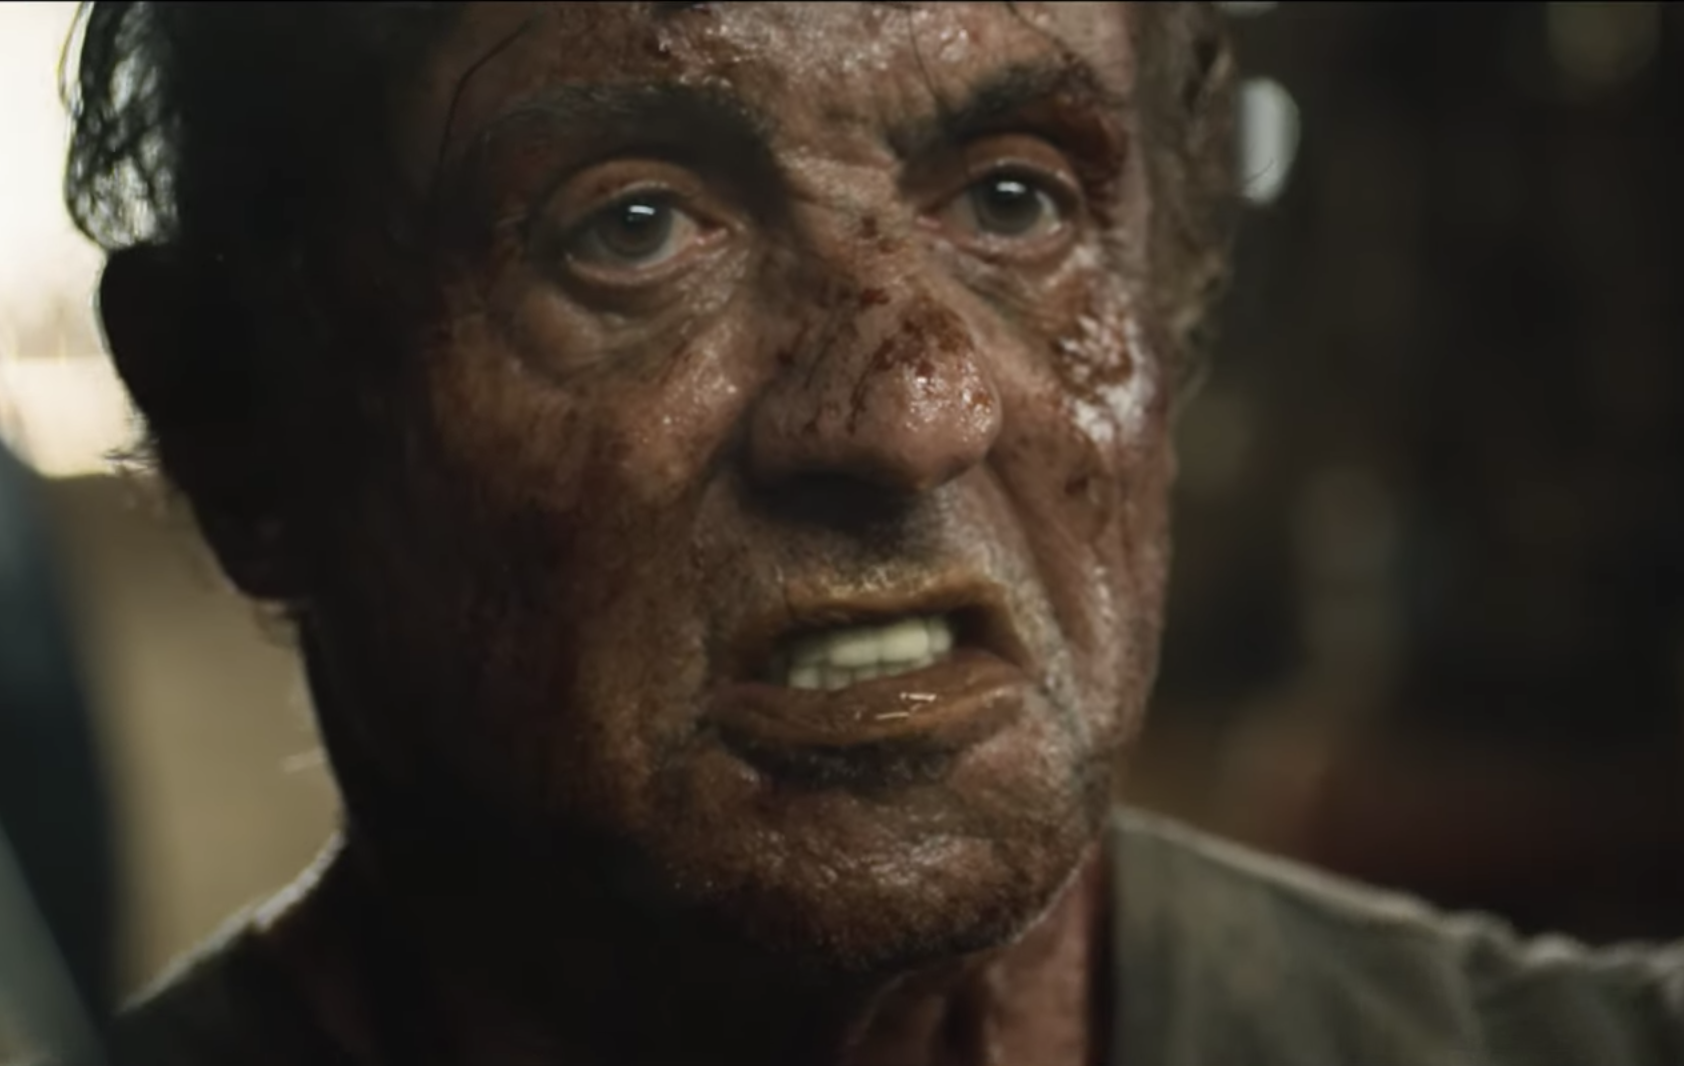 'Rambo: Last Blood' Review: Stallone's Angry Icon Hits Rock Bottom in Dreary Finale